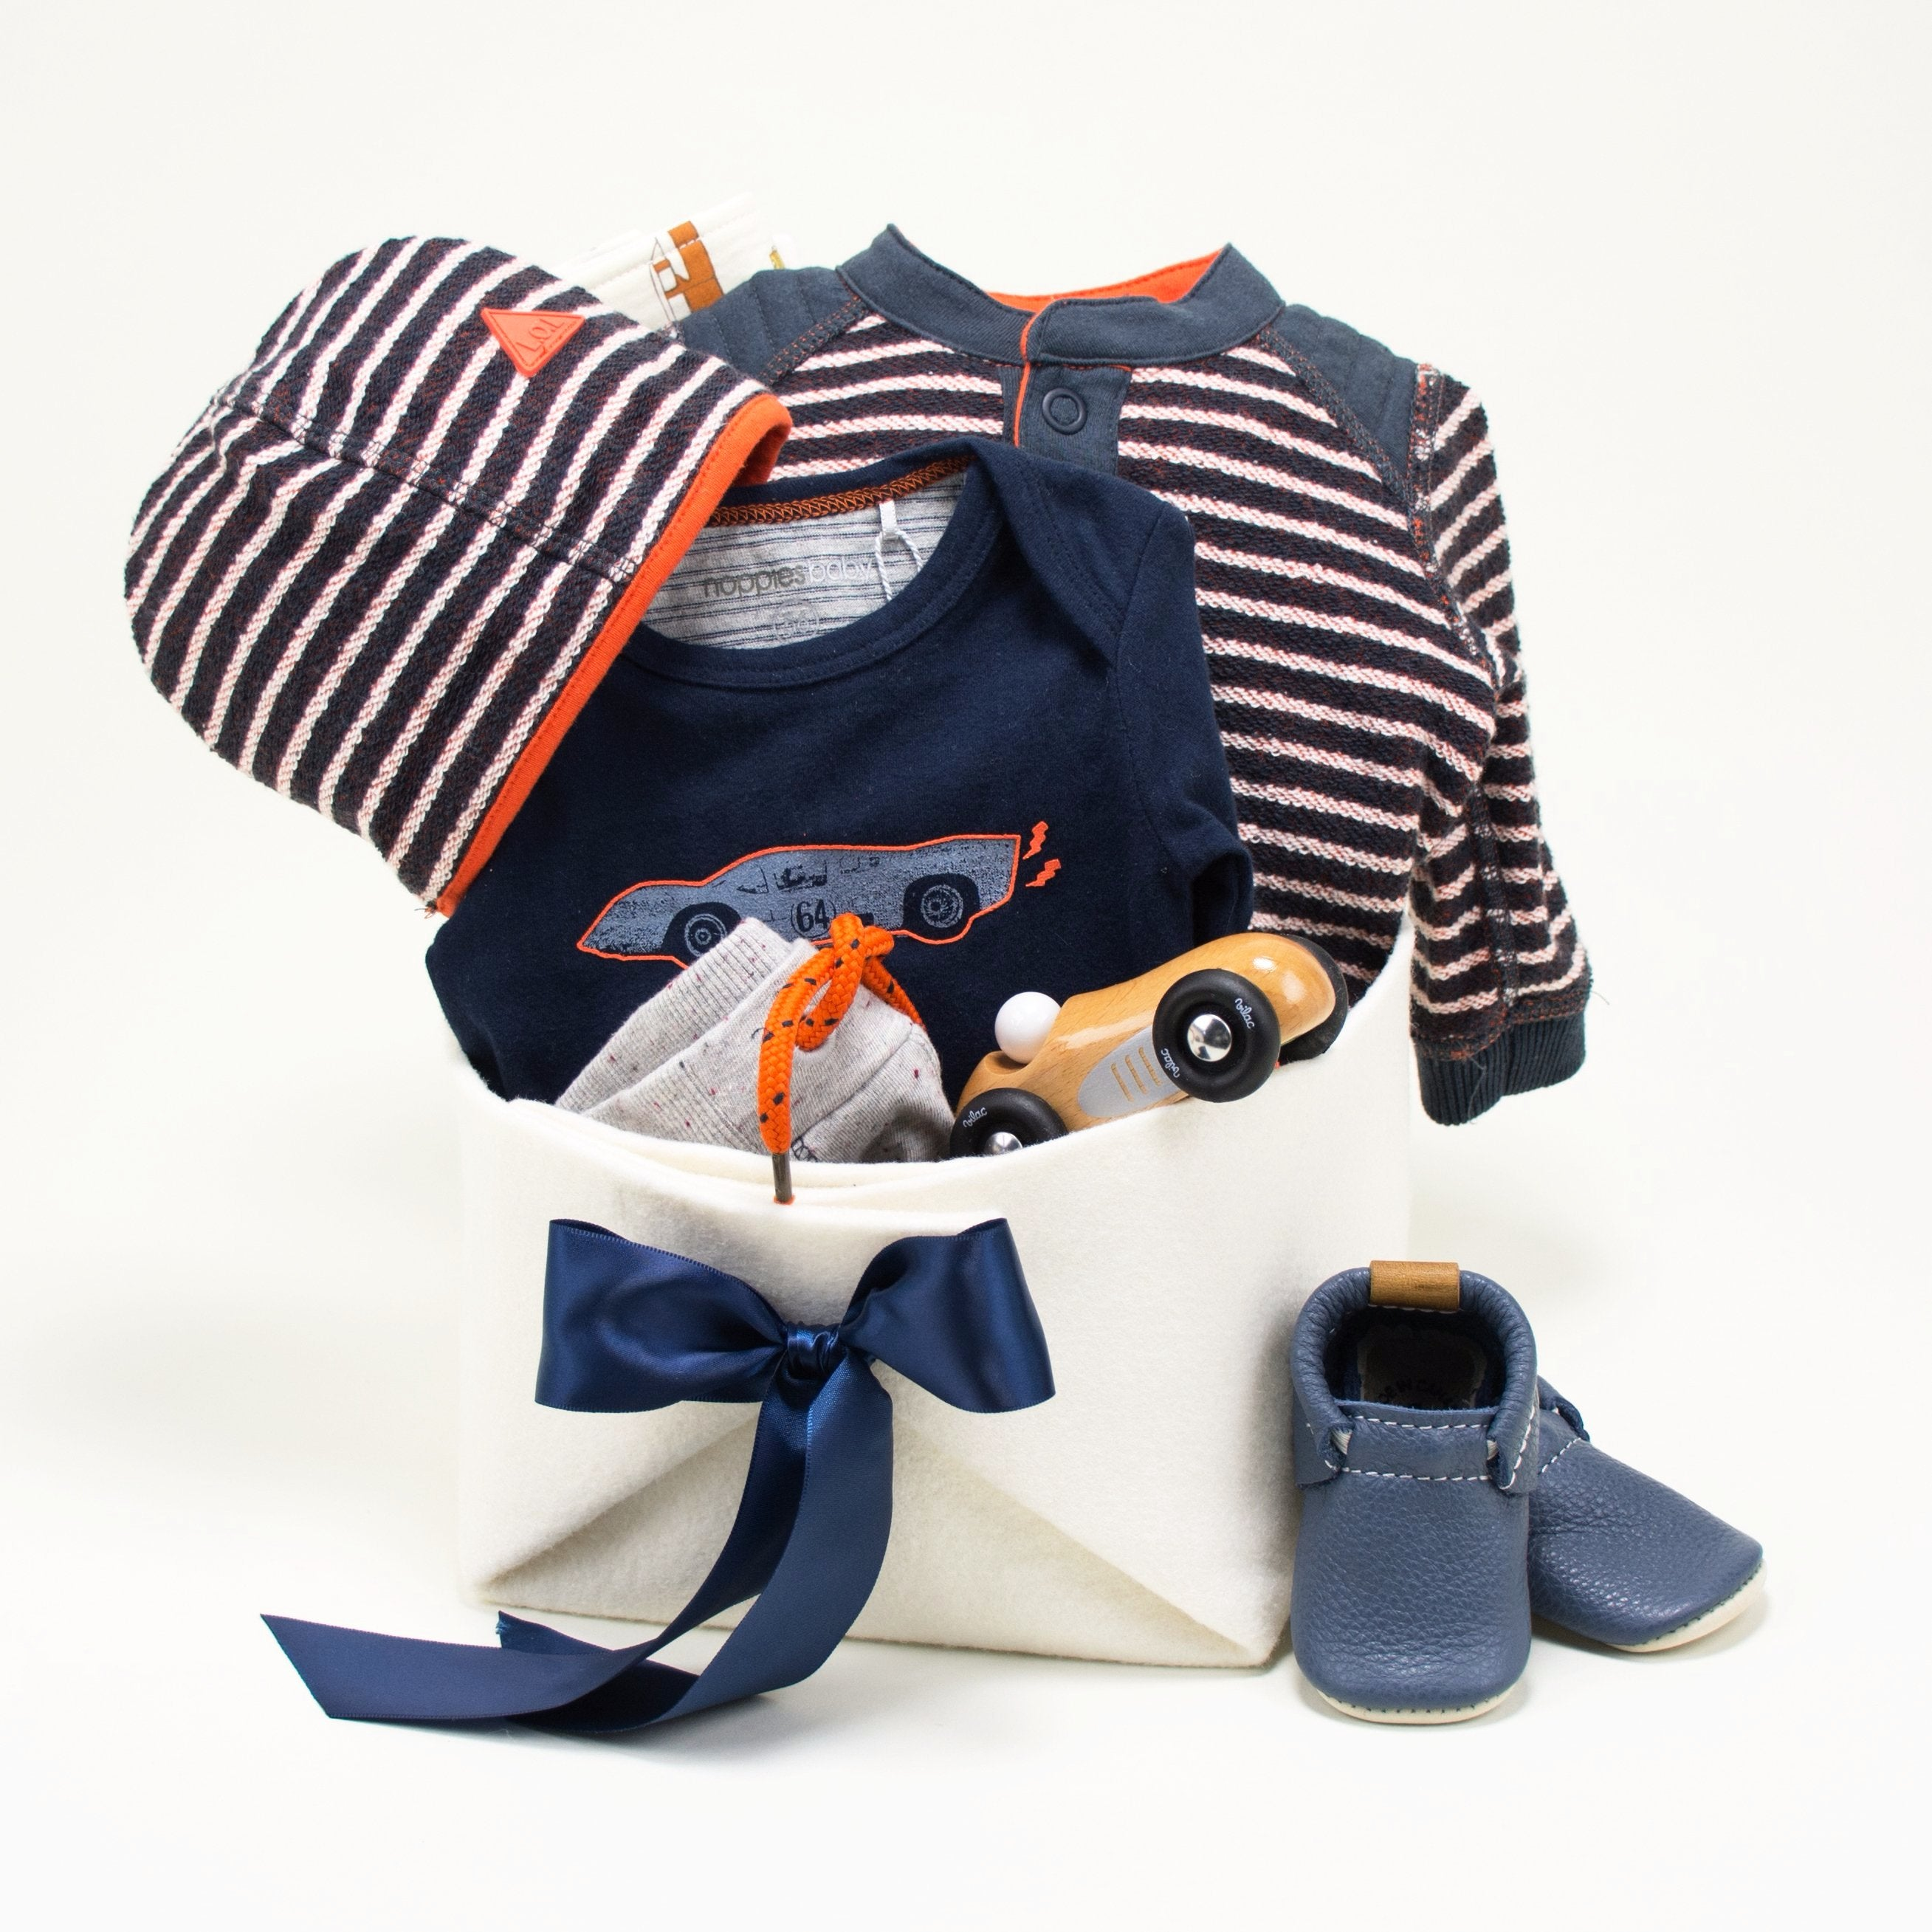 Trendy Baby Boy Gift Basket by Bonjour Baby Baskets